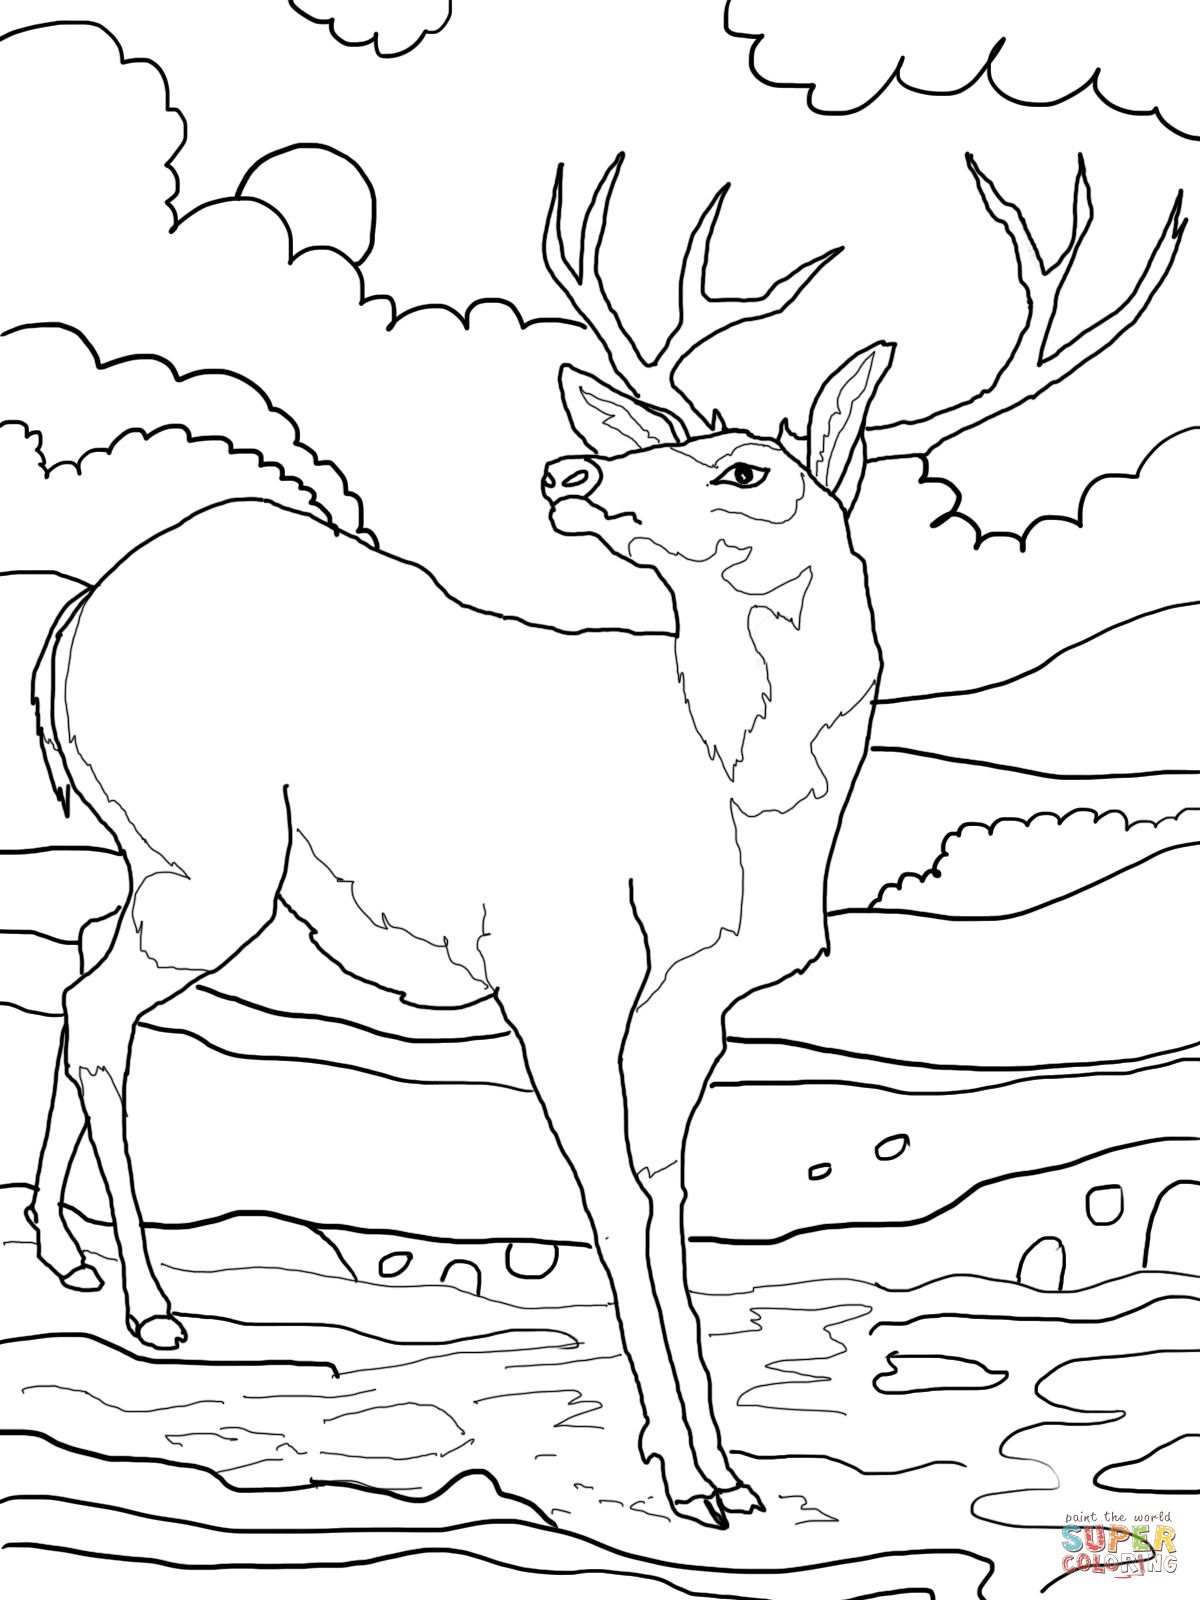 Deer Printable Pictures Supercoloring Deer Coloring Pages